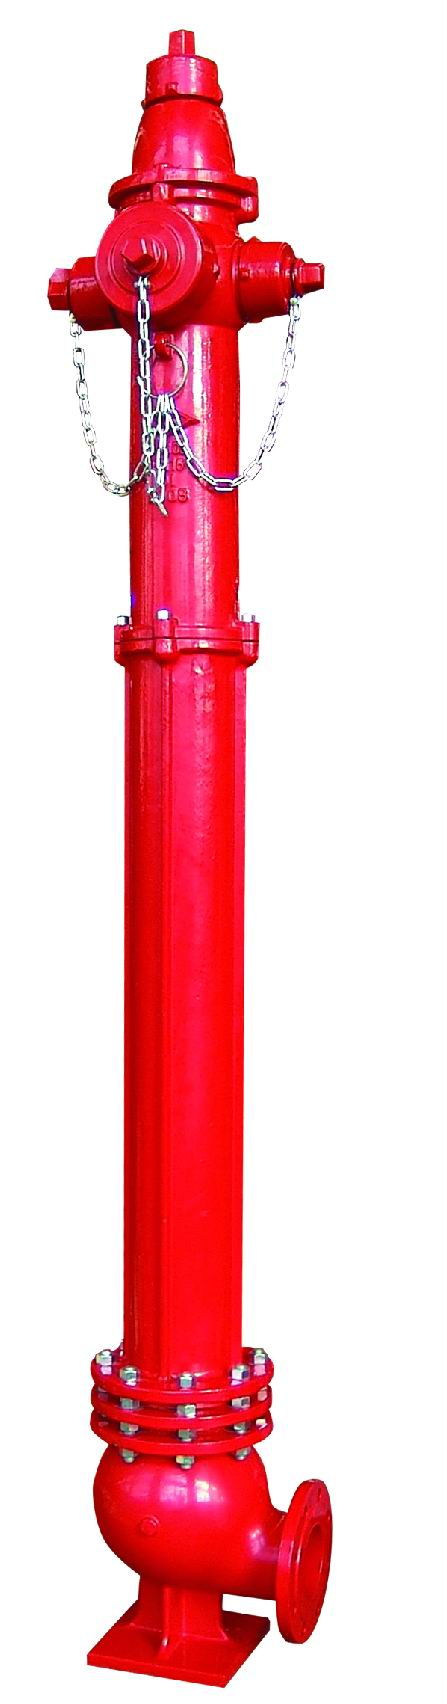 Reasonable price Grade 8.8 Hdg Hex Bolt And Nut -